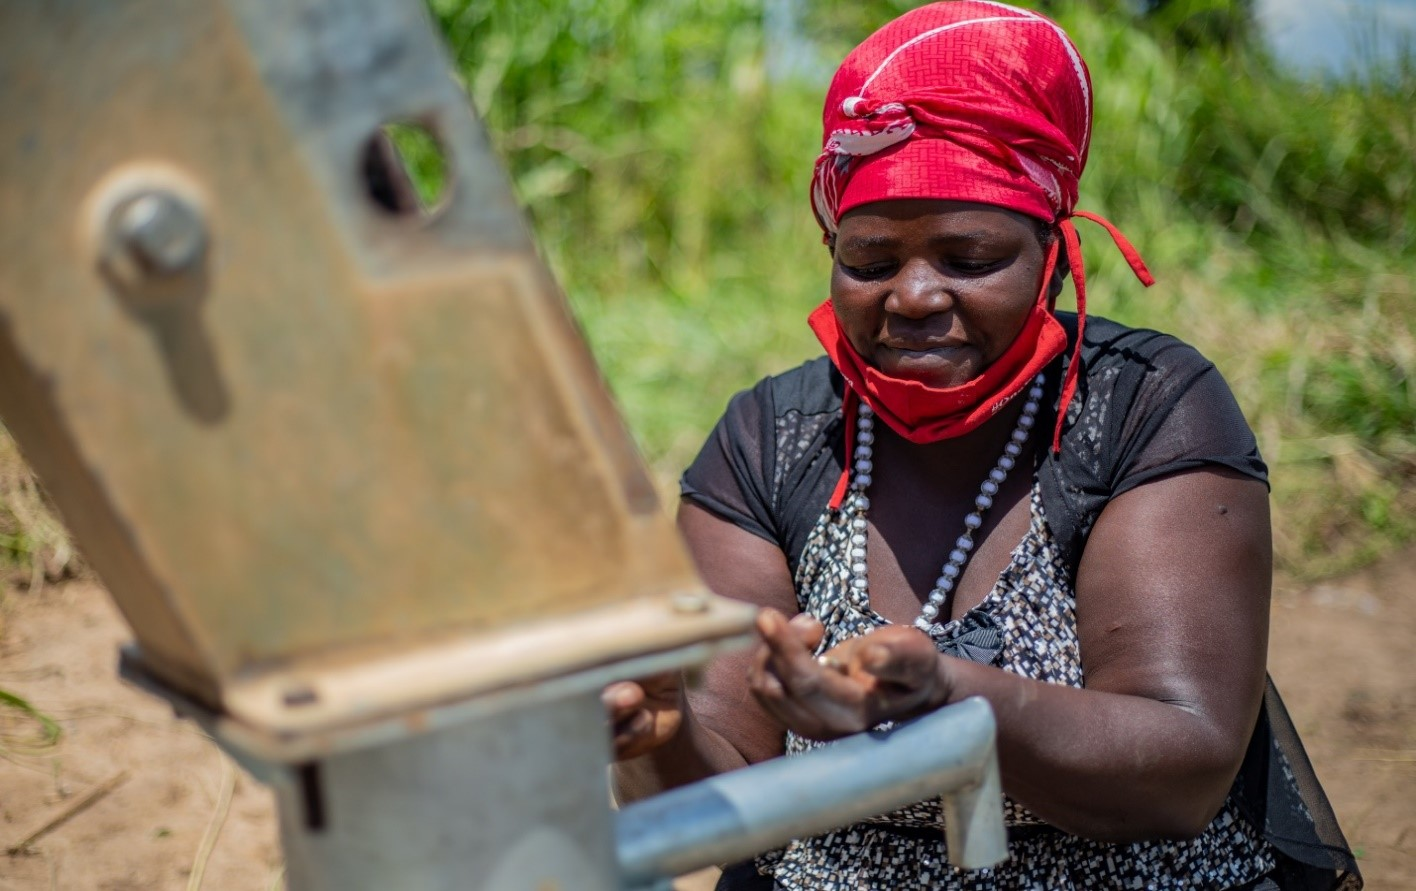 Cathlyne is 42 years, a single mother of 4 children (2 boys and 2 girls) she's a Pump Mechanic from Lamogi Sub County trained by Amref Health Africa